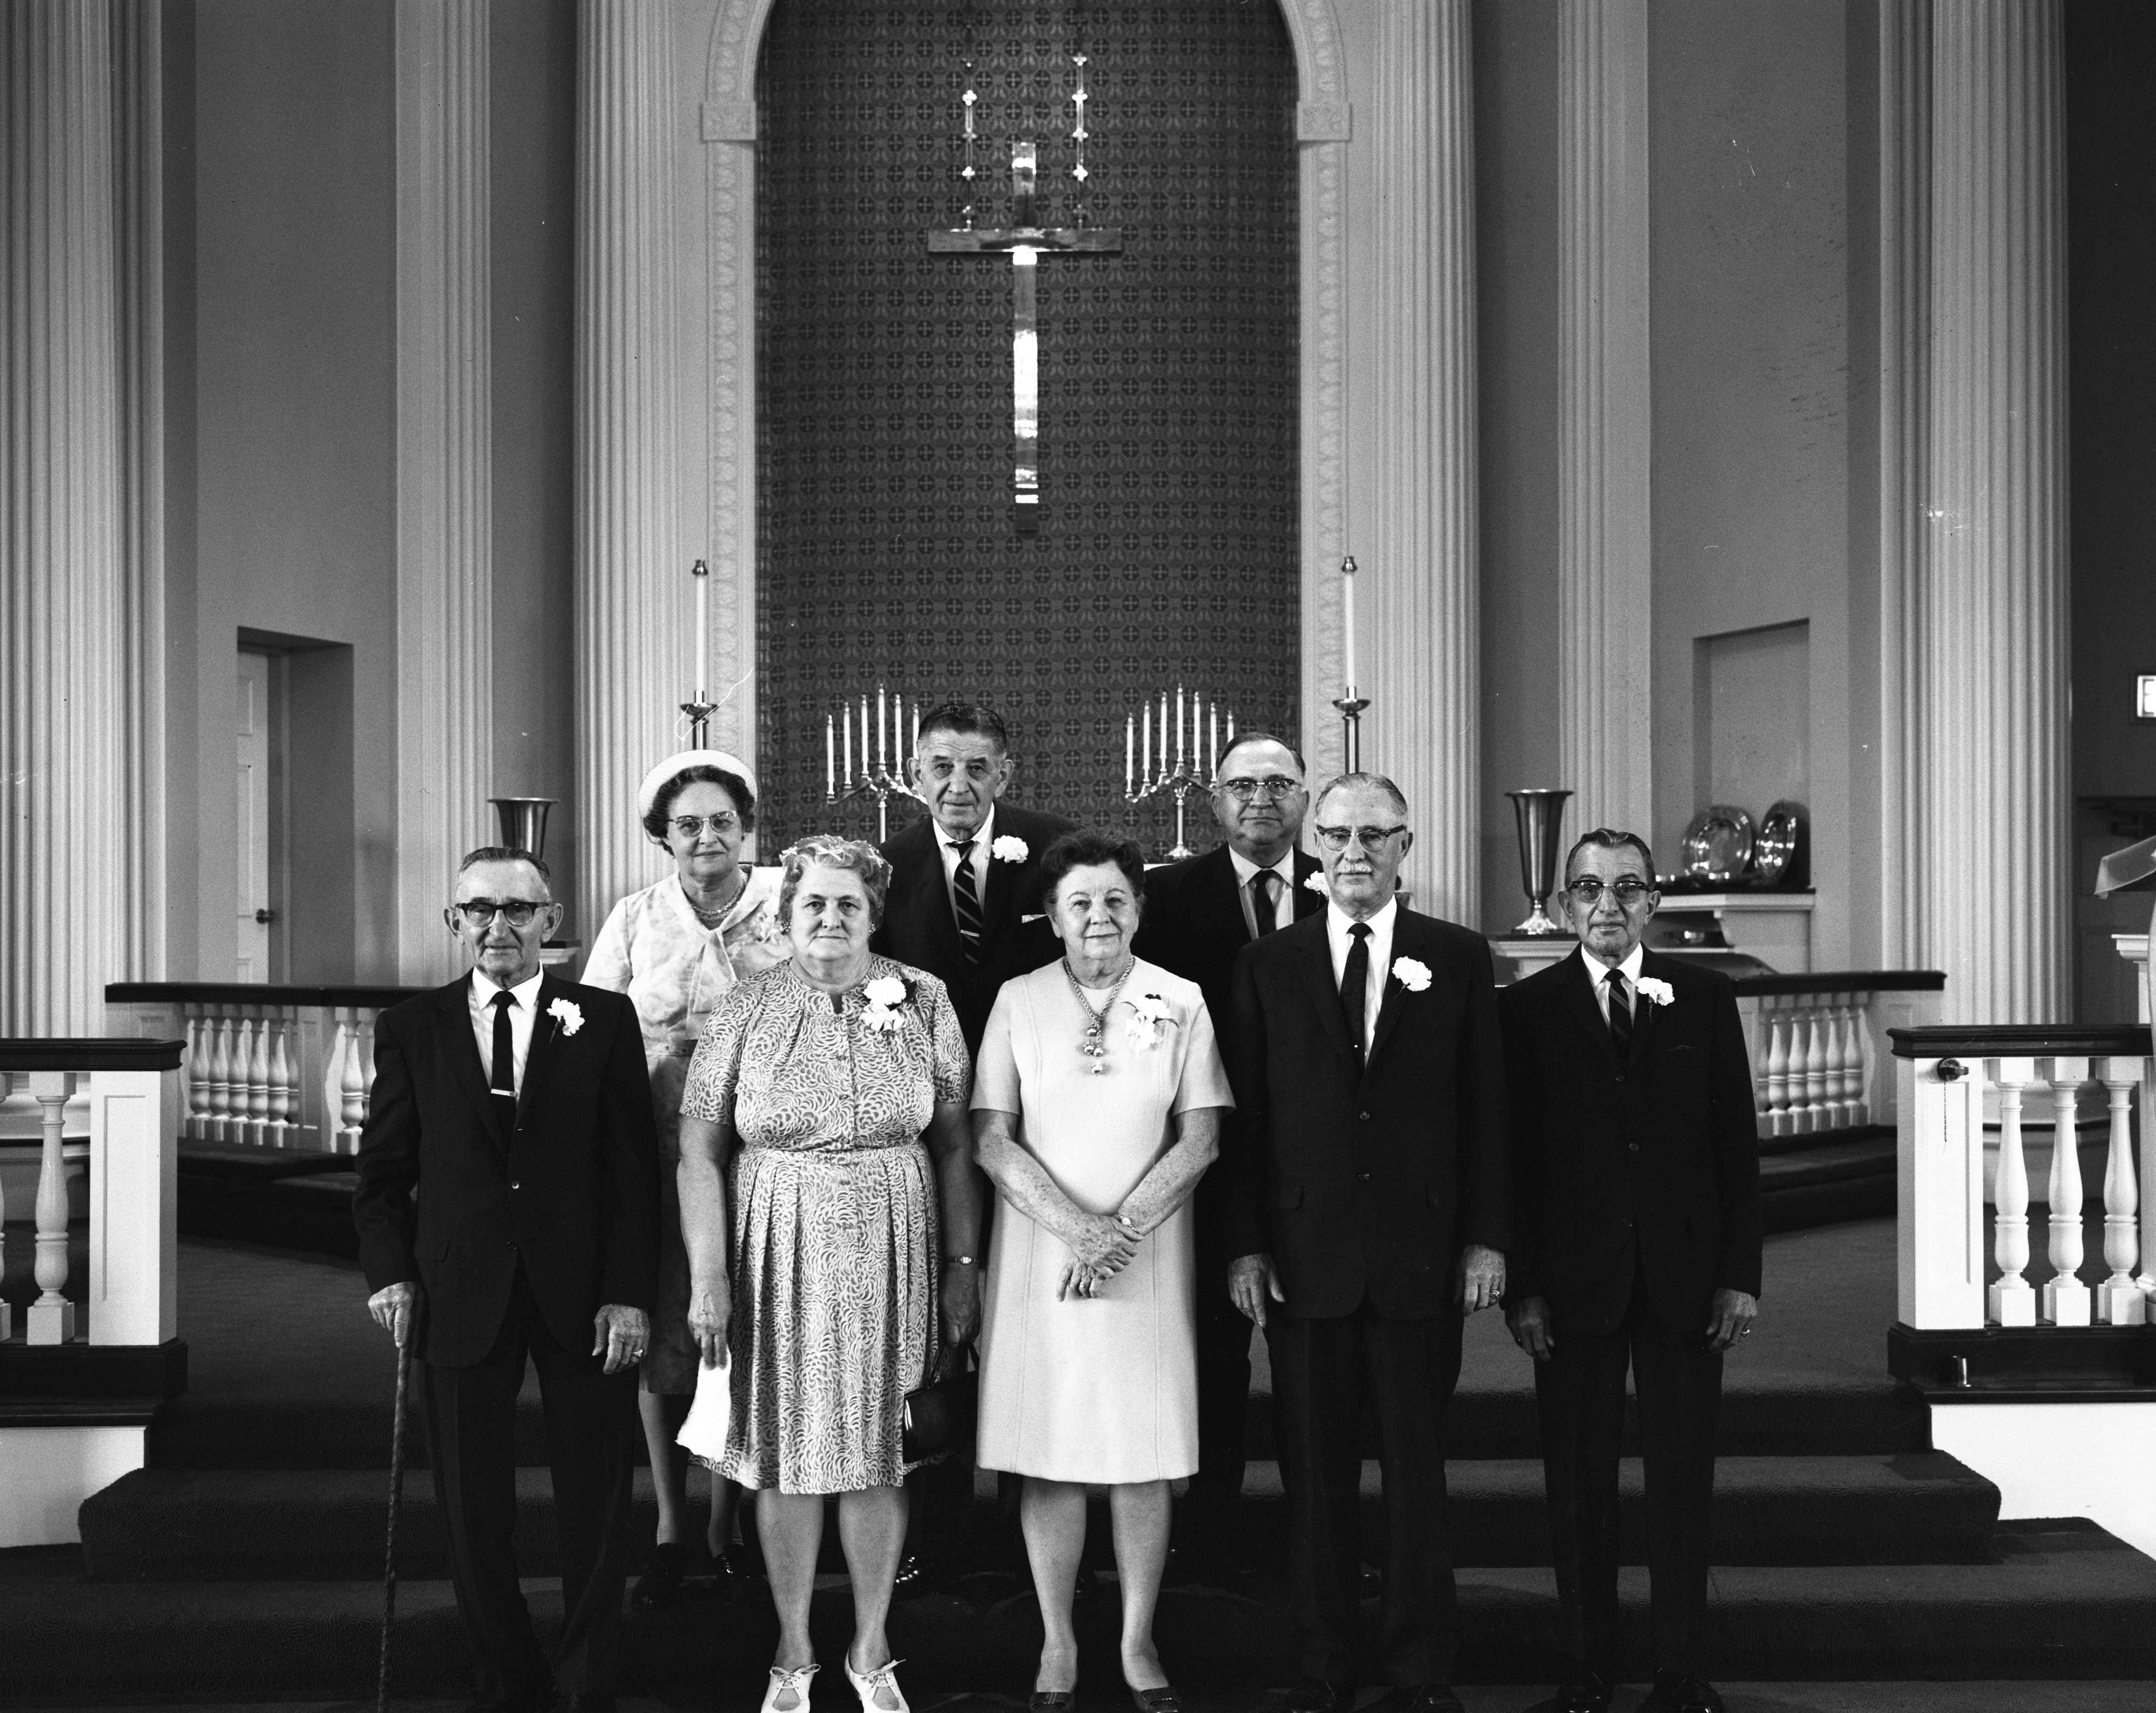 50th Anniversary Confirmation Class Reunion at Zion Lutheran Church, May 1968 image